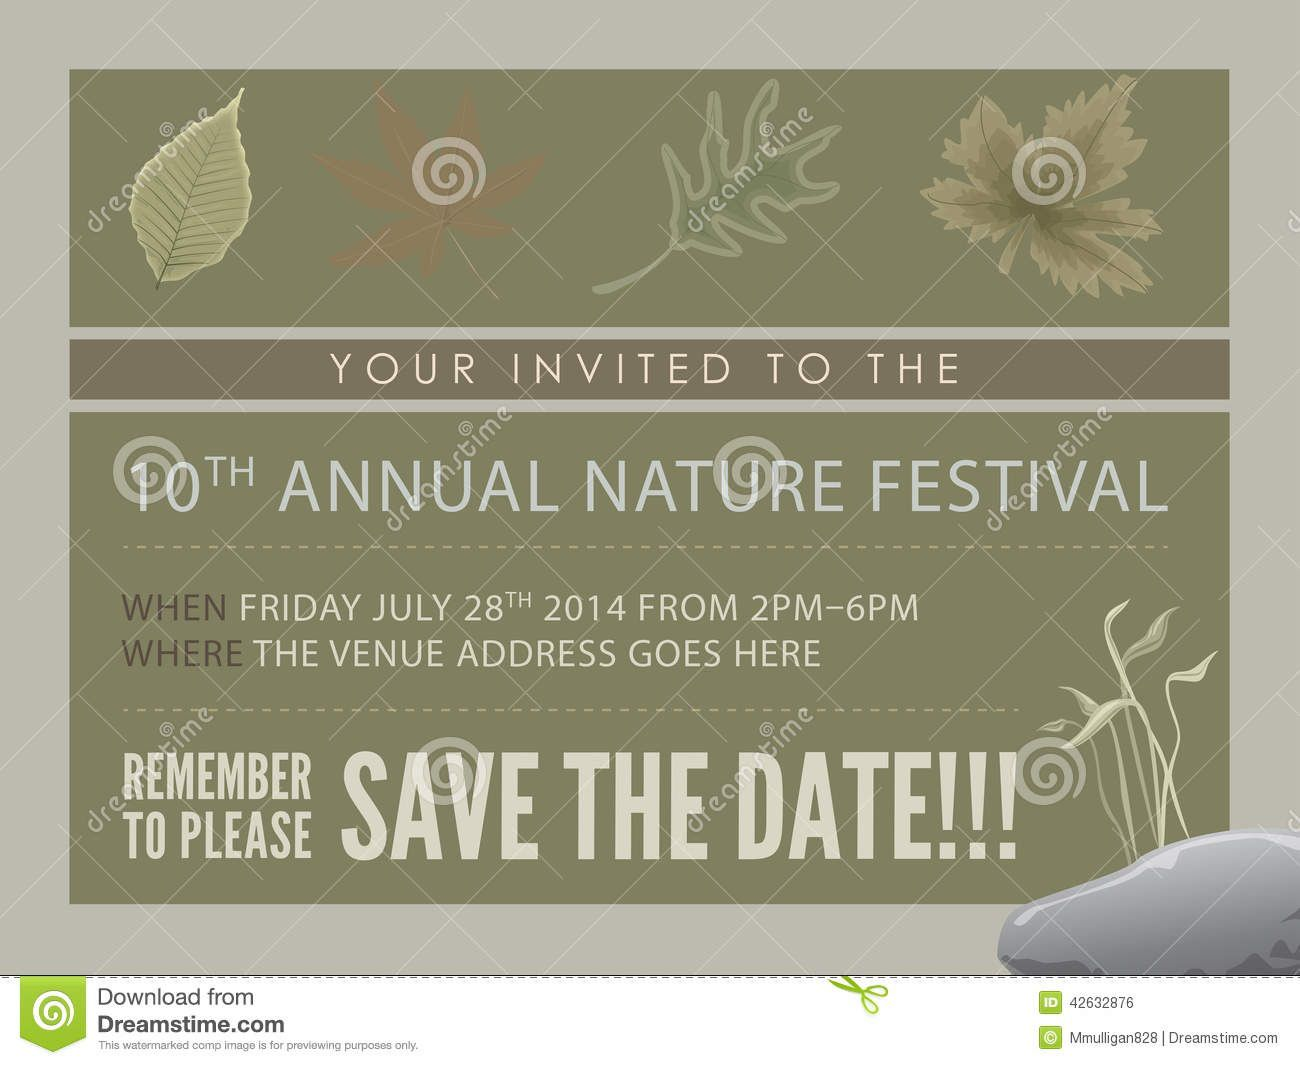 008 Best Save The Date Flyer Template Example  Word EventFull